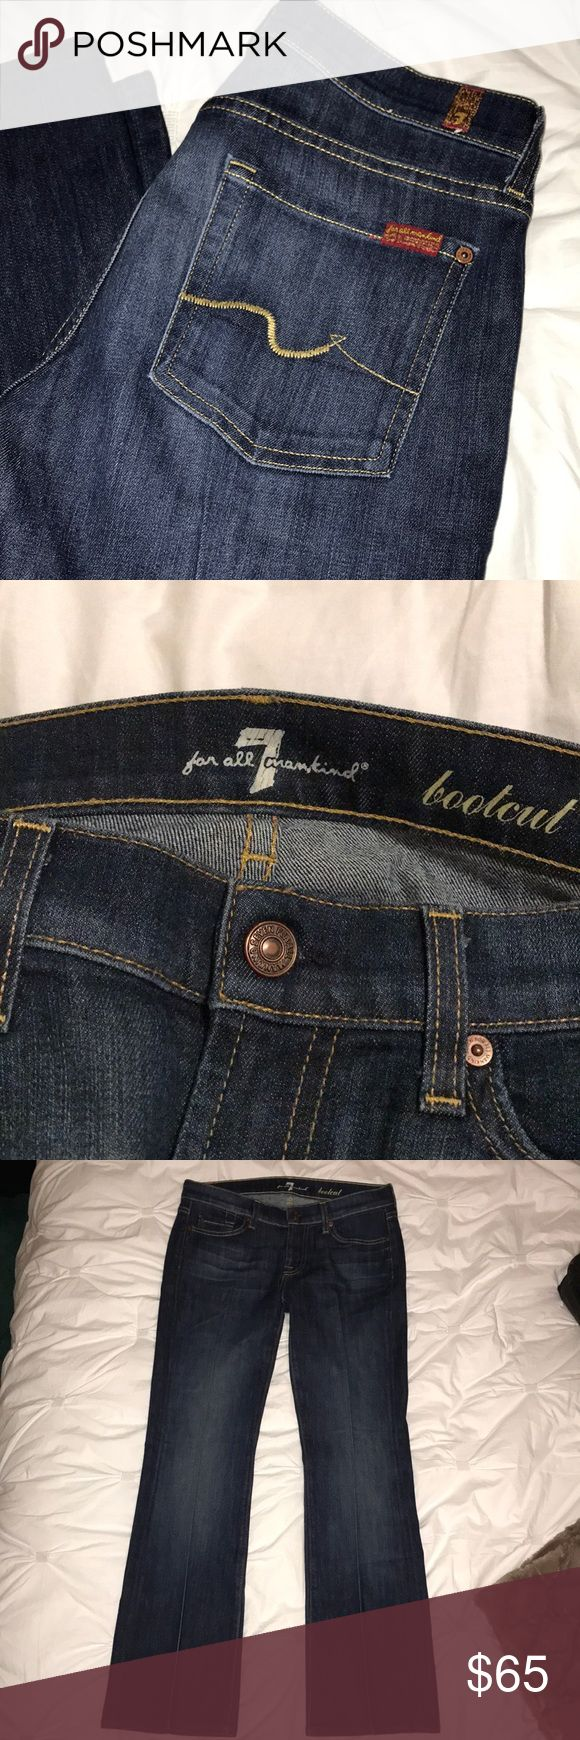 7 for All Man Kind Jeans 7 For All Mankind Bootcut Jeans   Great pair of jeans that fit just right, but are too short for me which is why they are being sold   Only worn once and in excellent condition 7 For All Mankind Jeans Boot Cut